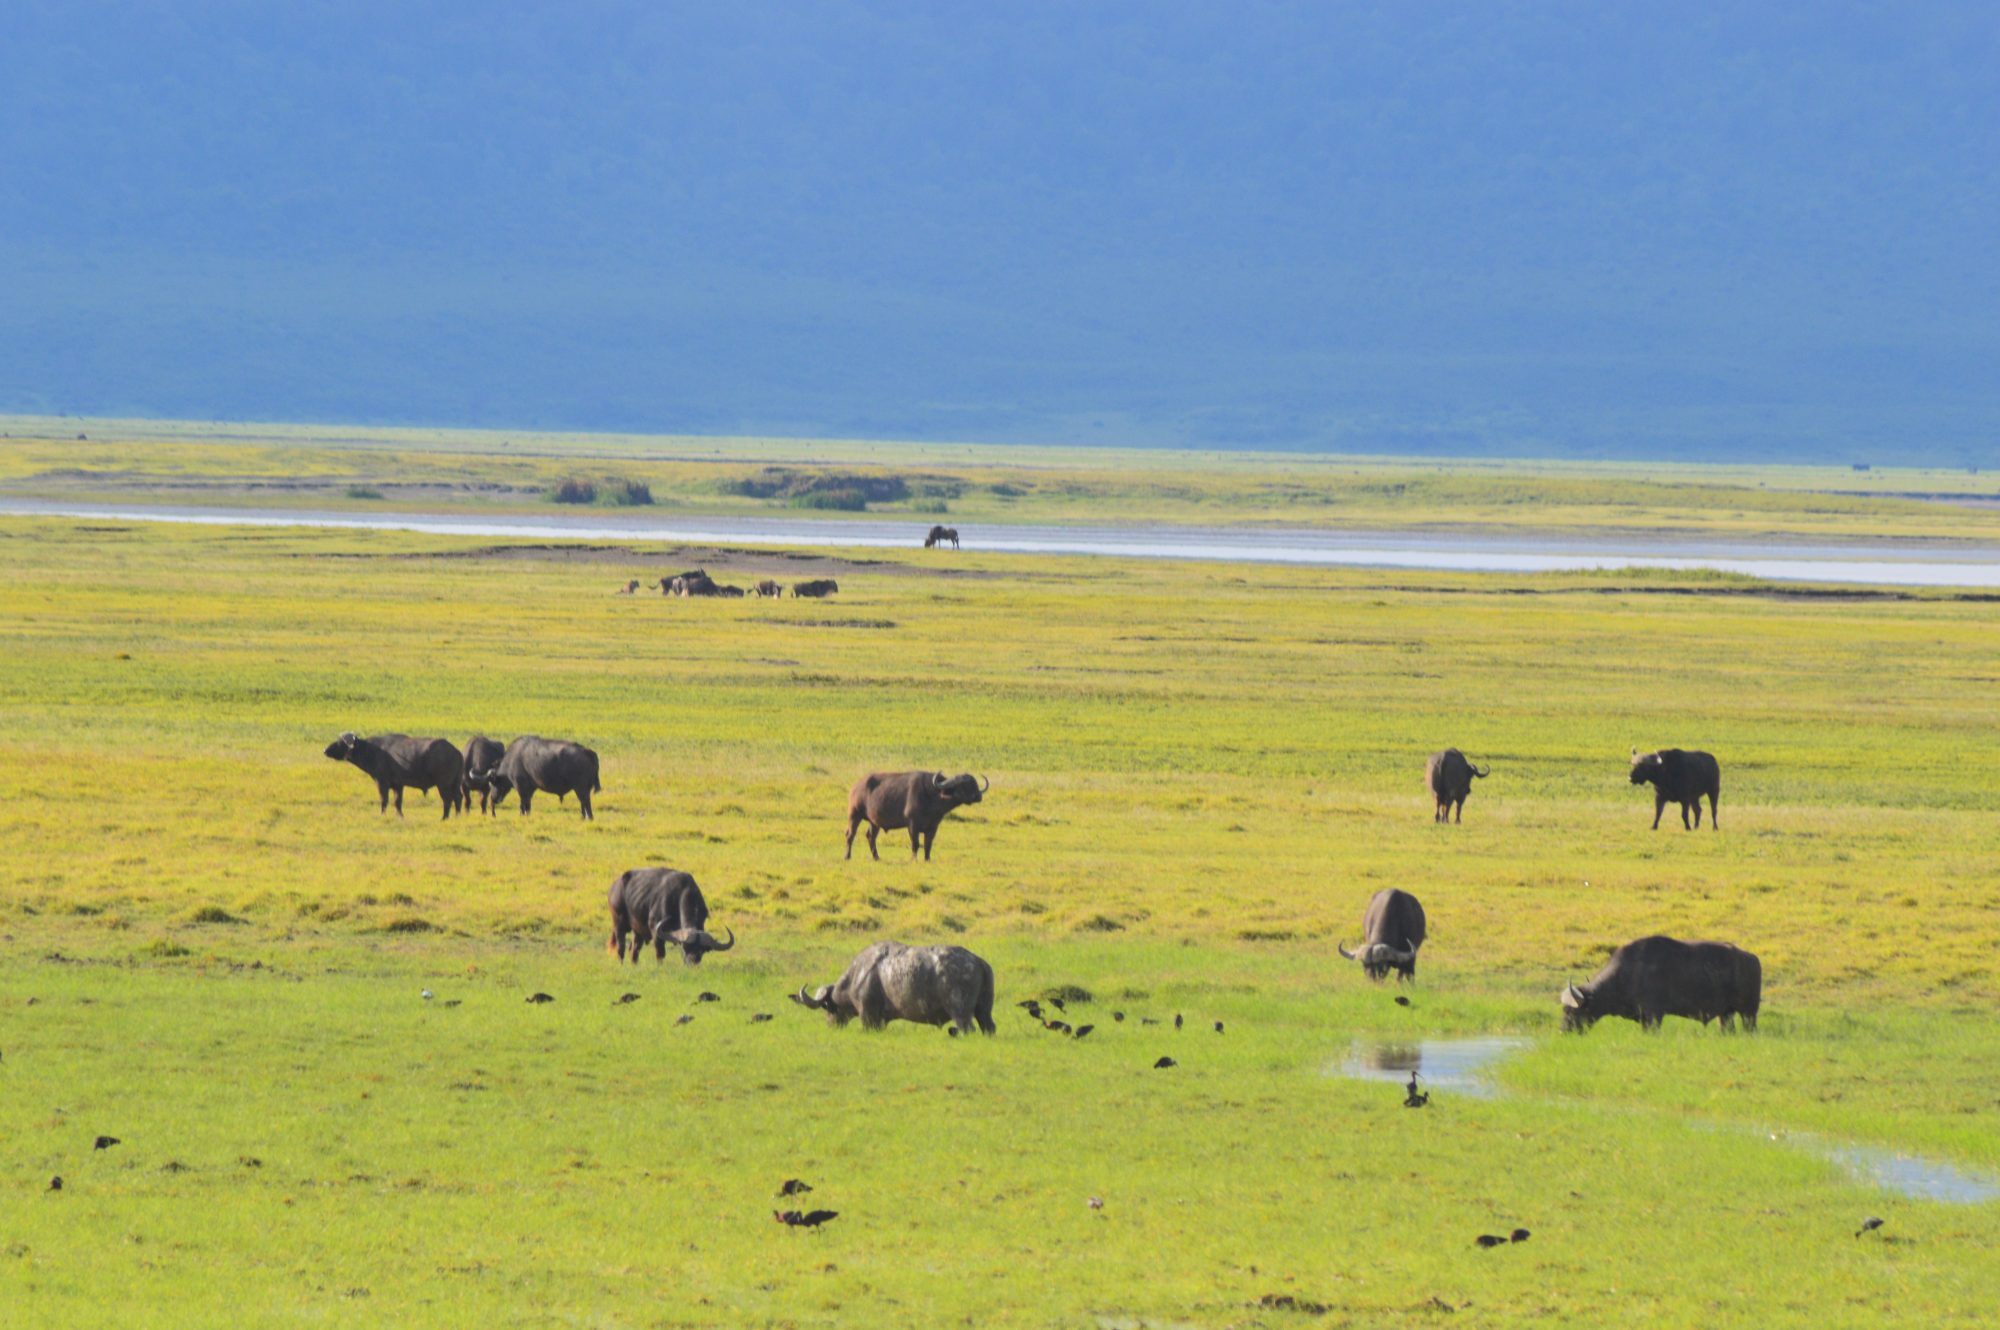 Buffalo in Ngorongoro Crater